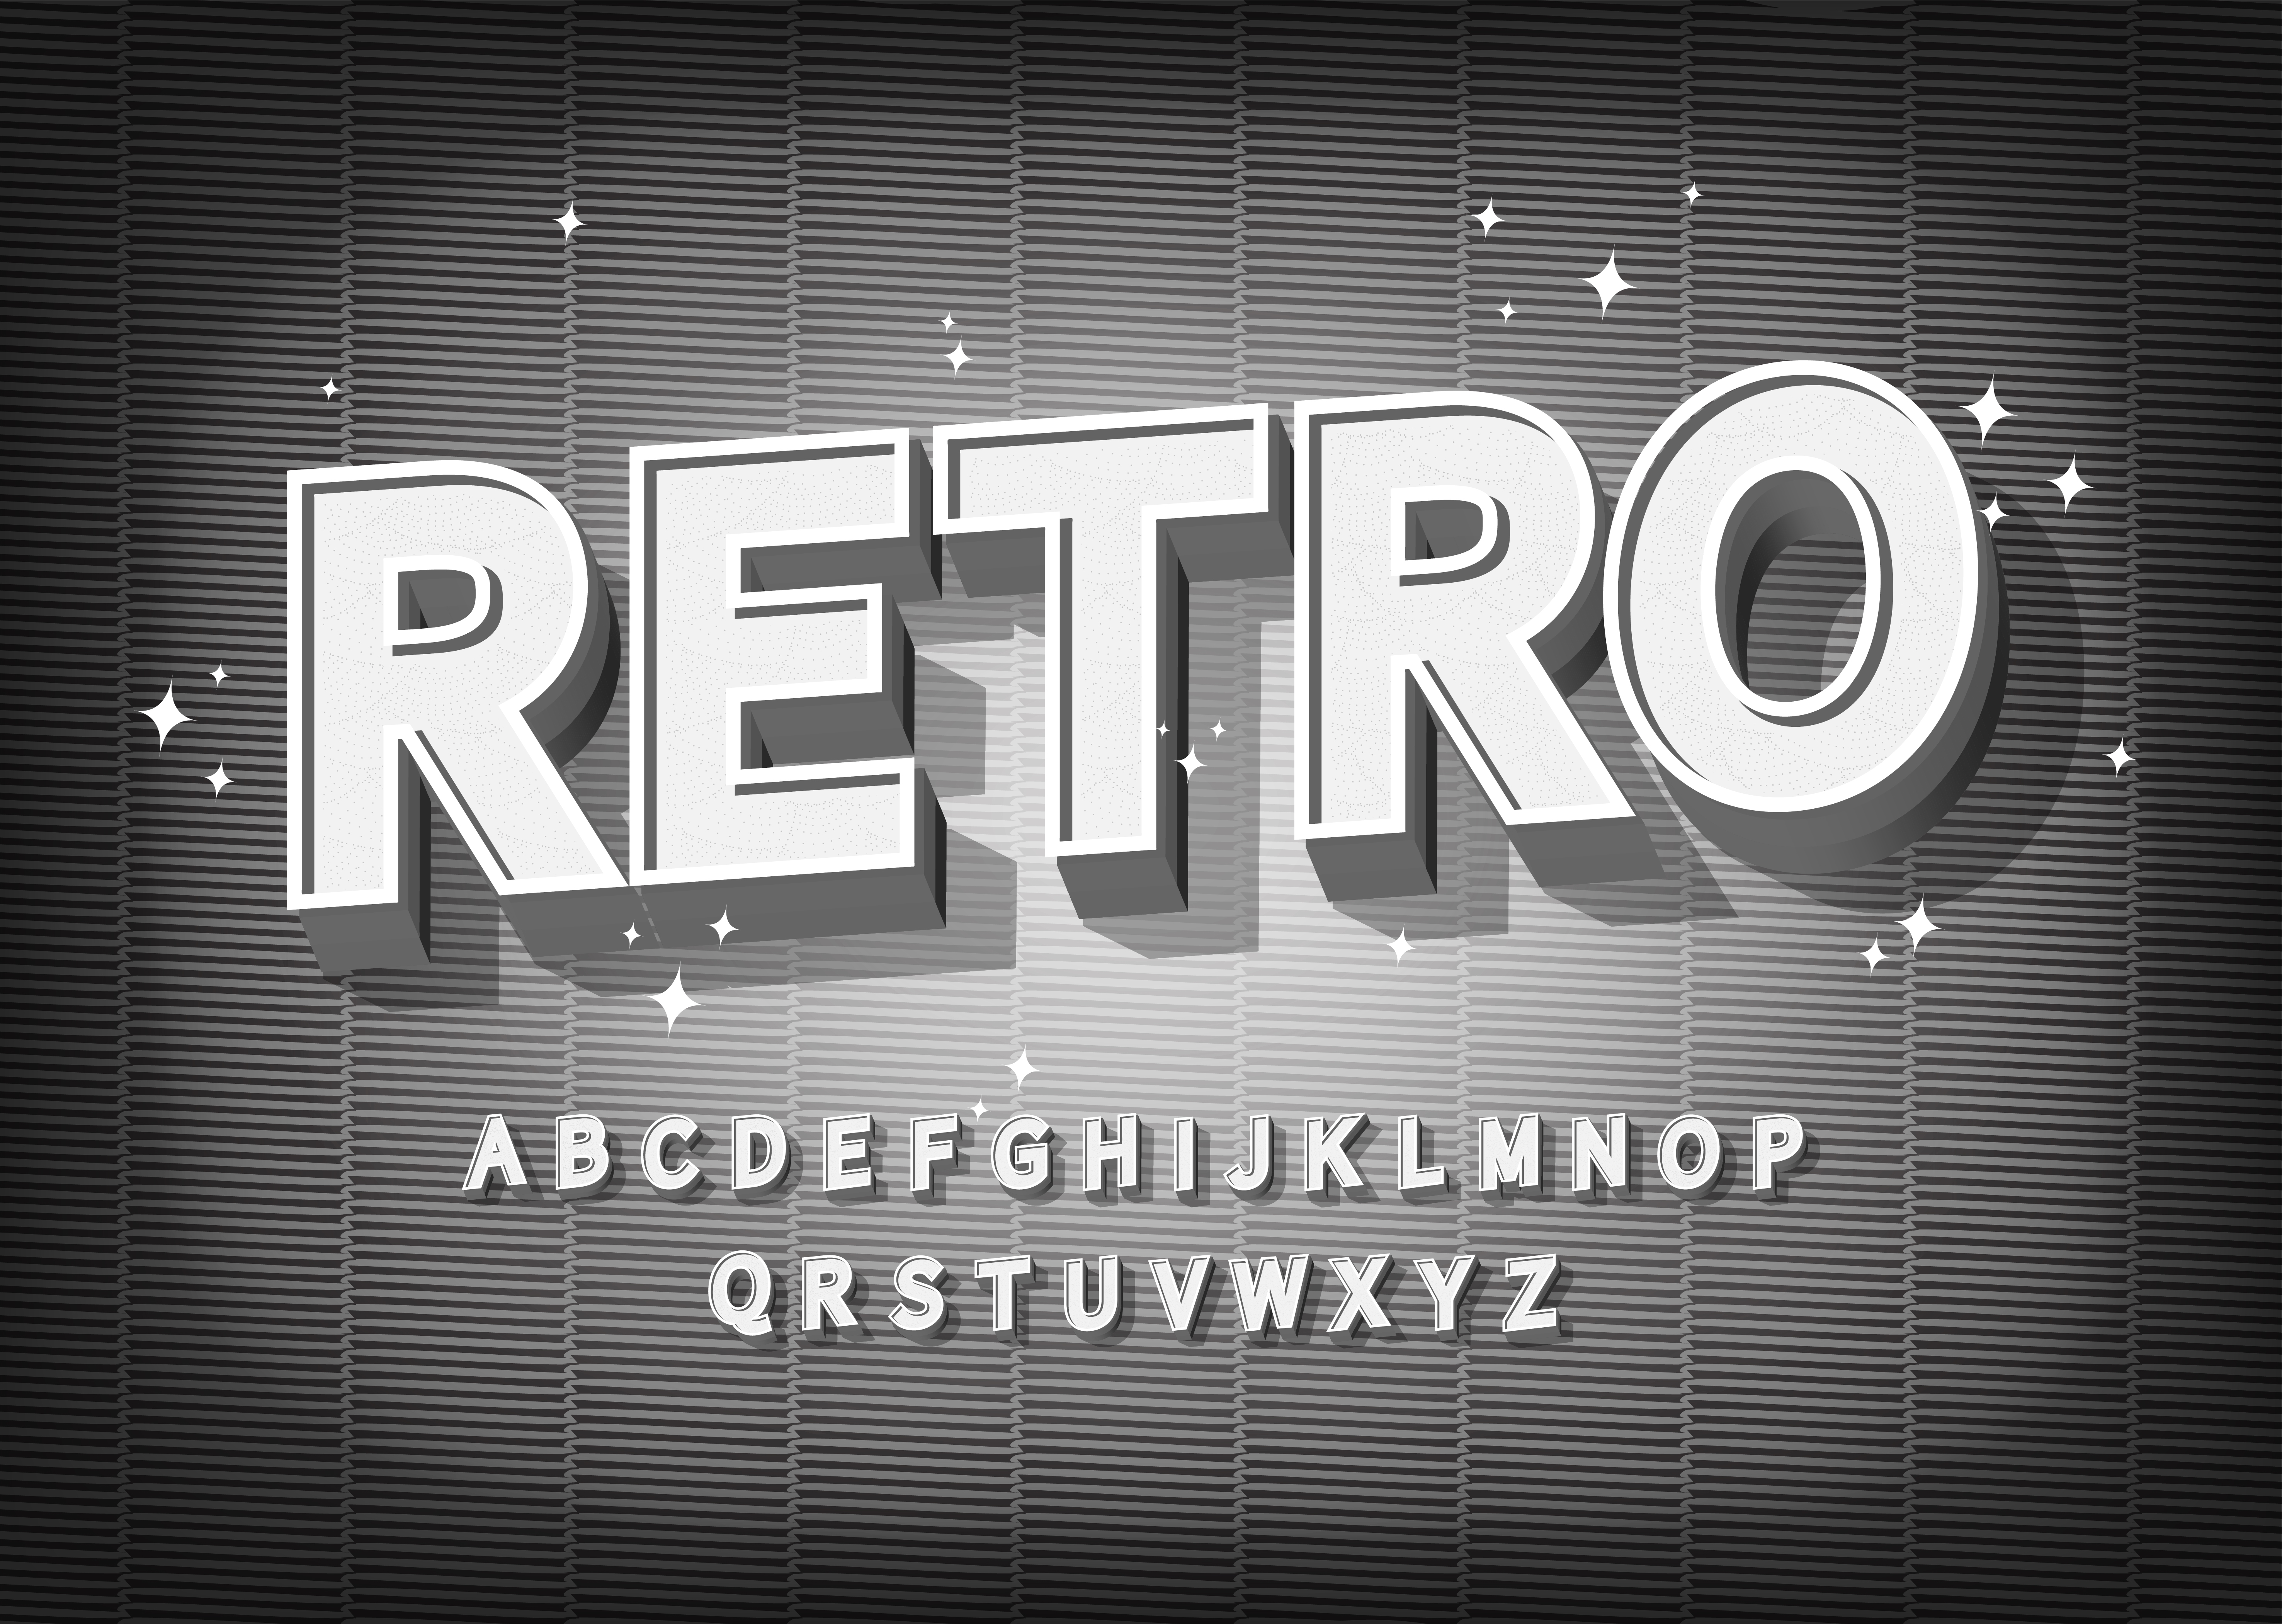 Retro Font Effect Old Cinema Styled Alphabet Download Free Vectors Clipart Graphics Vector Art